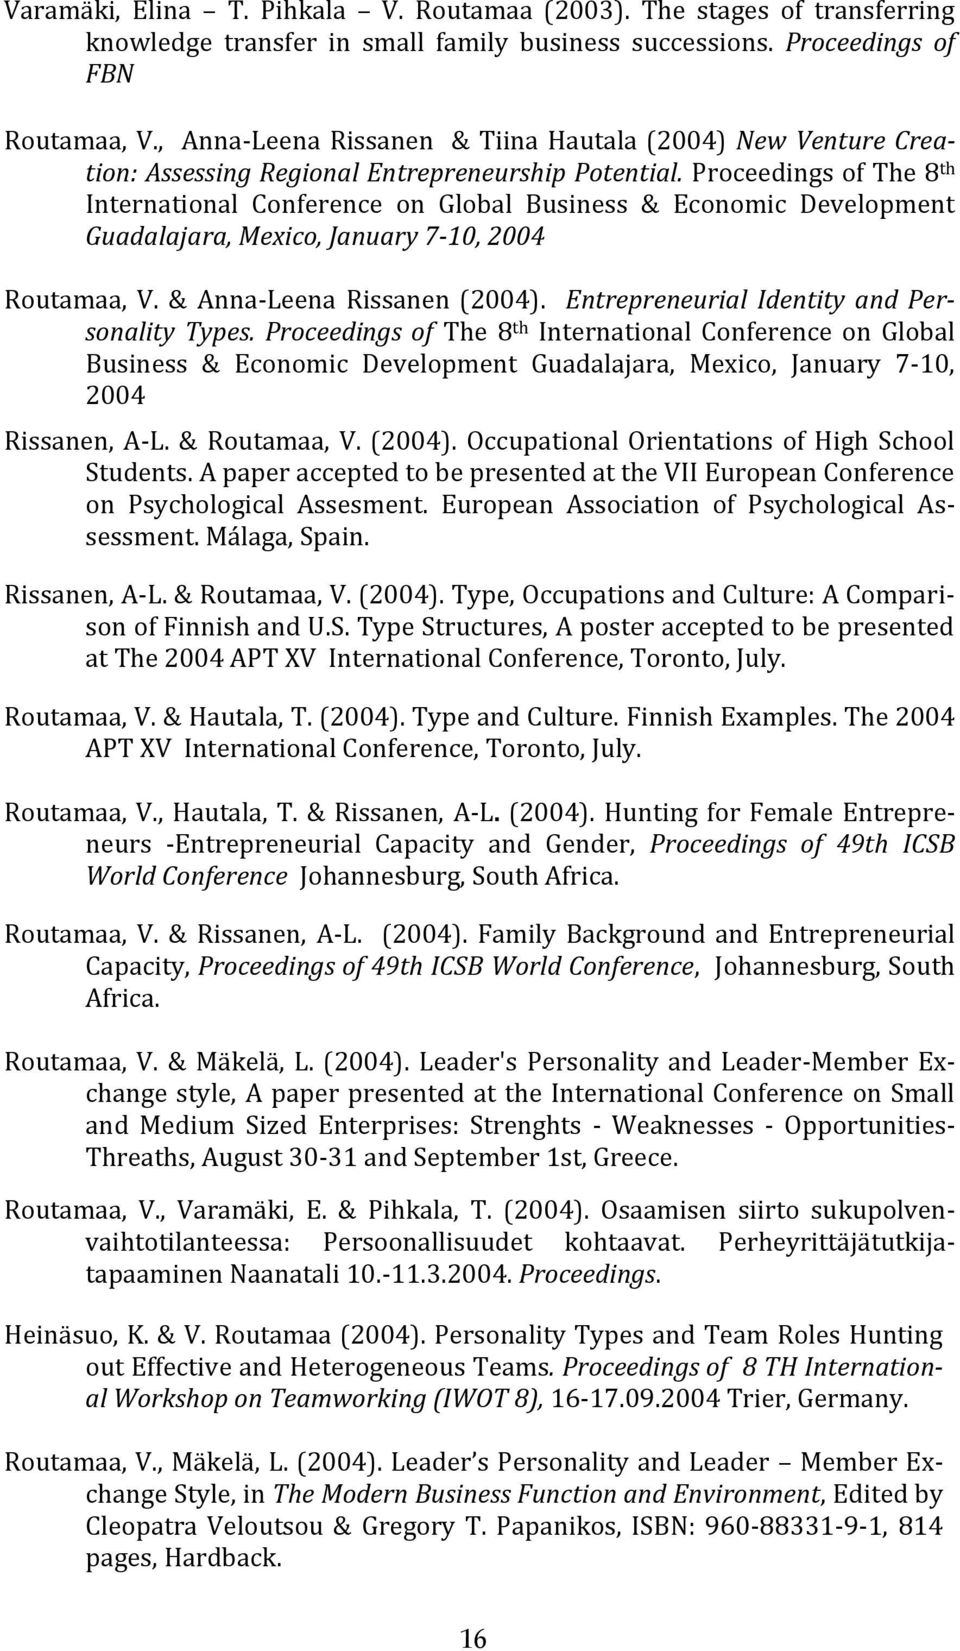 Proceedings of The 8 th International Conference on Global Business & Economic Development Guadalajara, Mexico, January 7-10, 2004 Routamaa, V. & Anna-Leena Rissanen (2004).